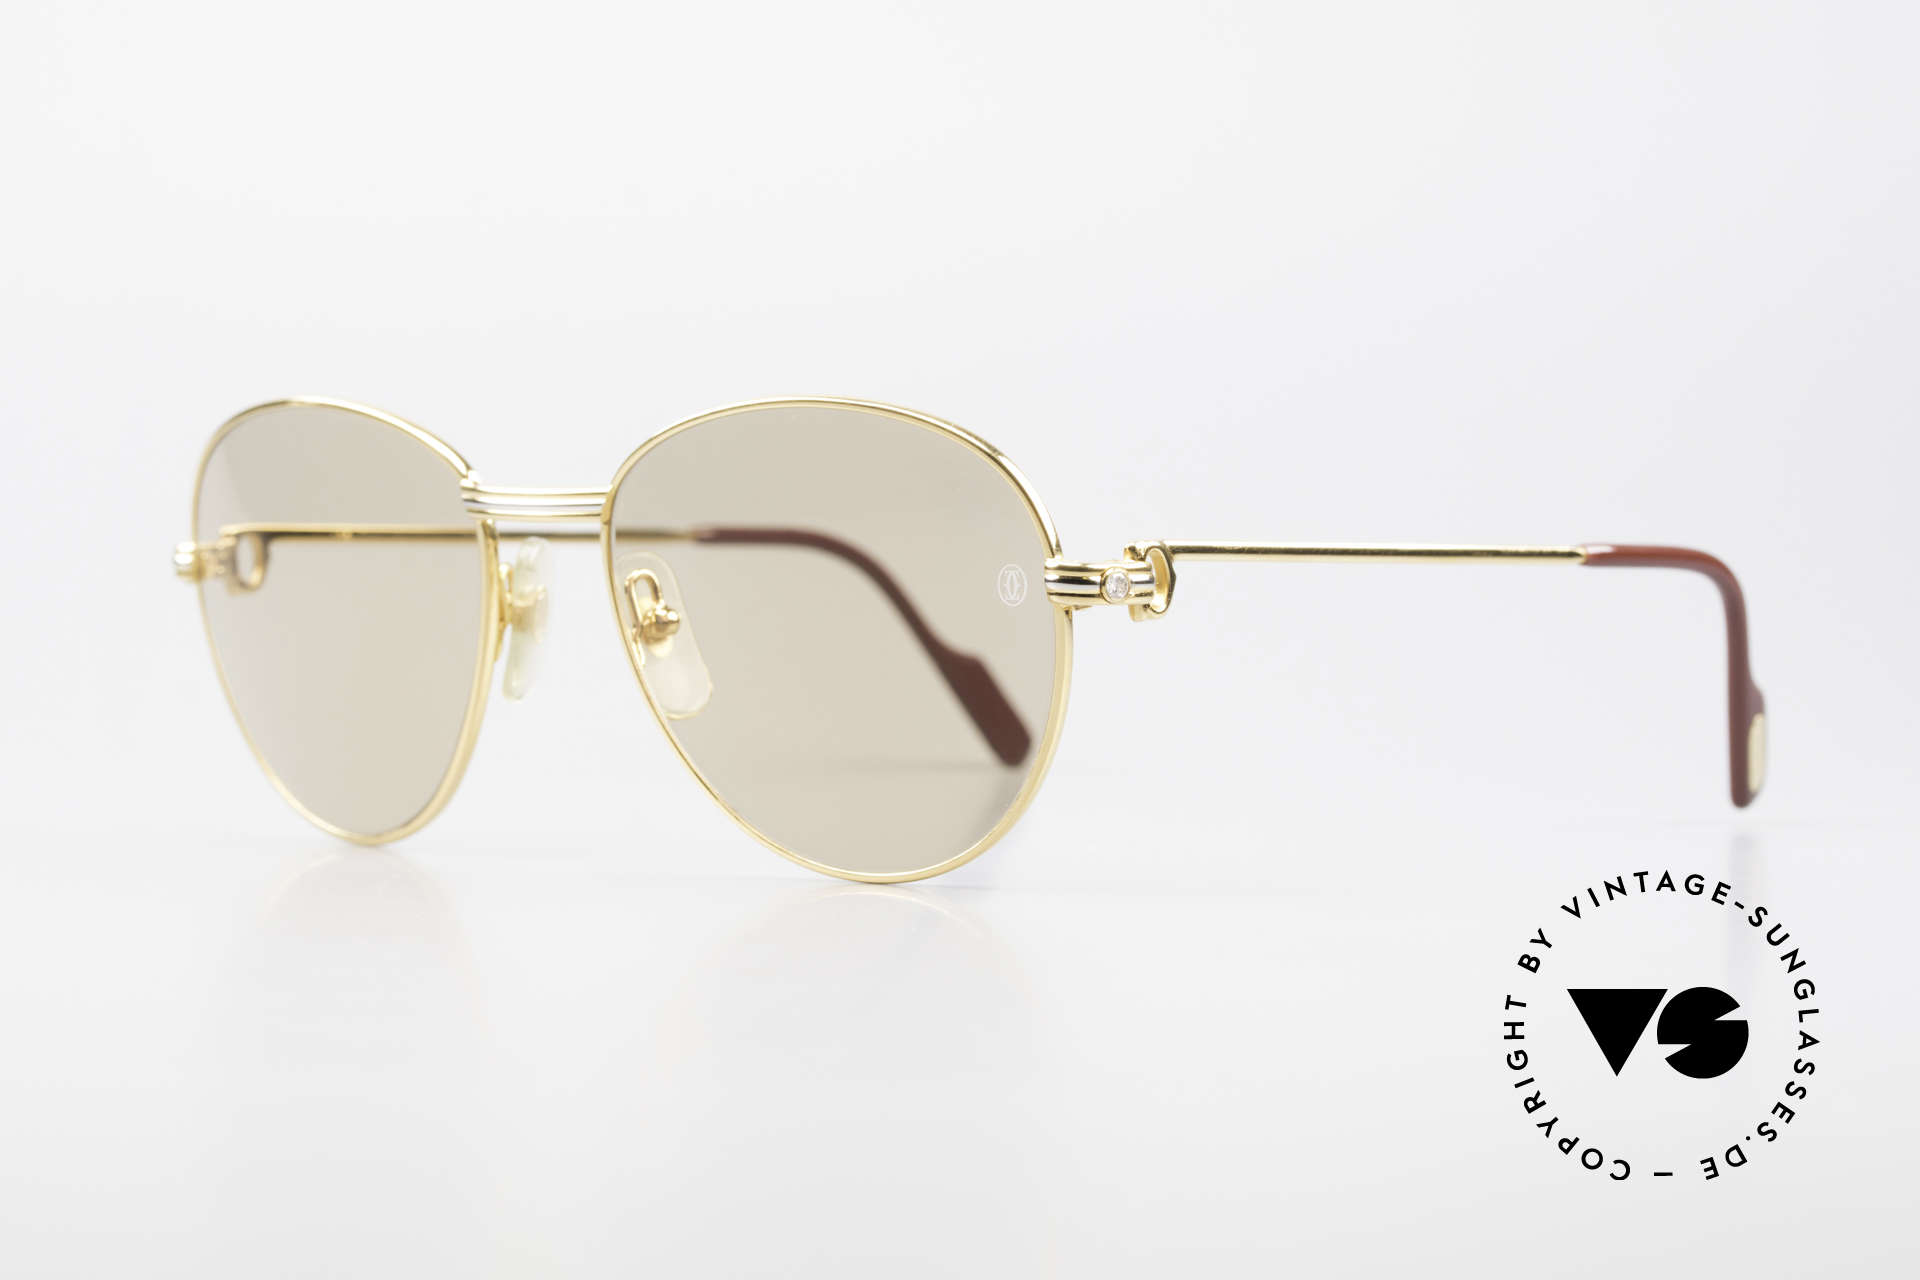 Cartier S Brillants 0,20 ct 1980's Diamond Sunglasses, with real DIAMONDS-decor on the temples (0,2 ct), Made for Women